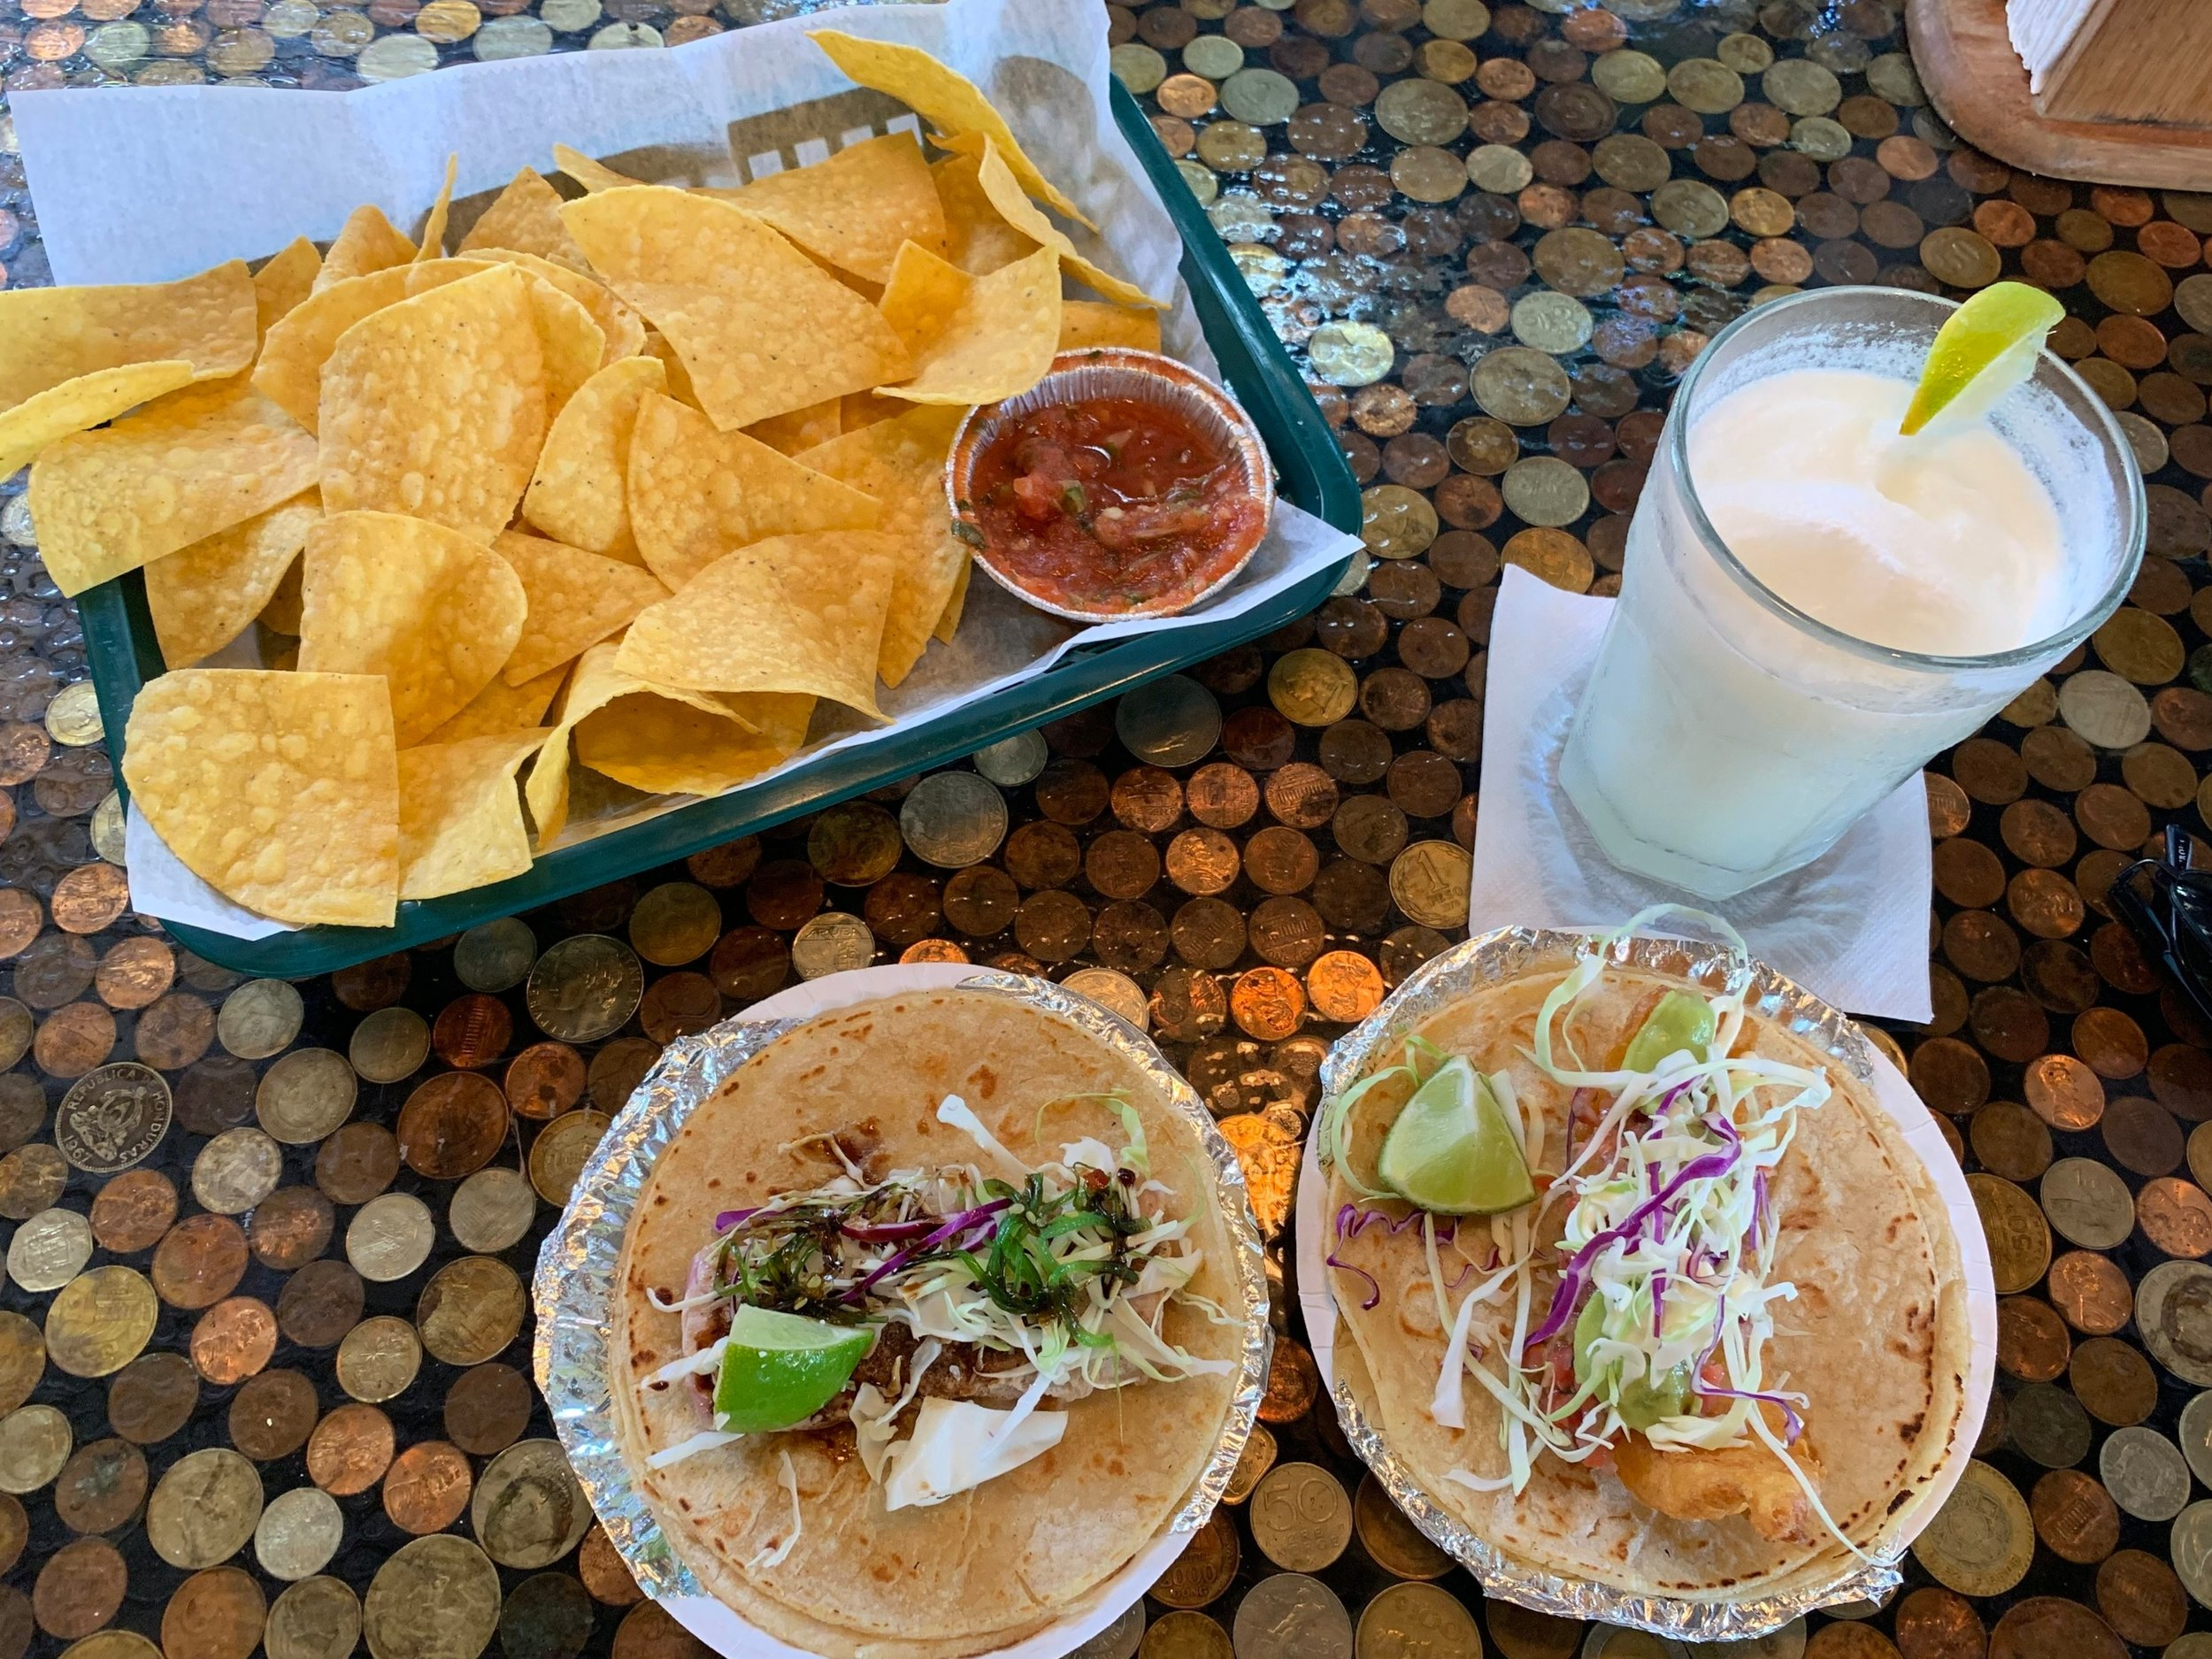 I enjoyed a delicious meal at Zaco's Tacos, where I was informed about the difference between a good landing and a great landing on the Culebra runway.